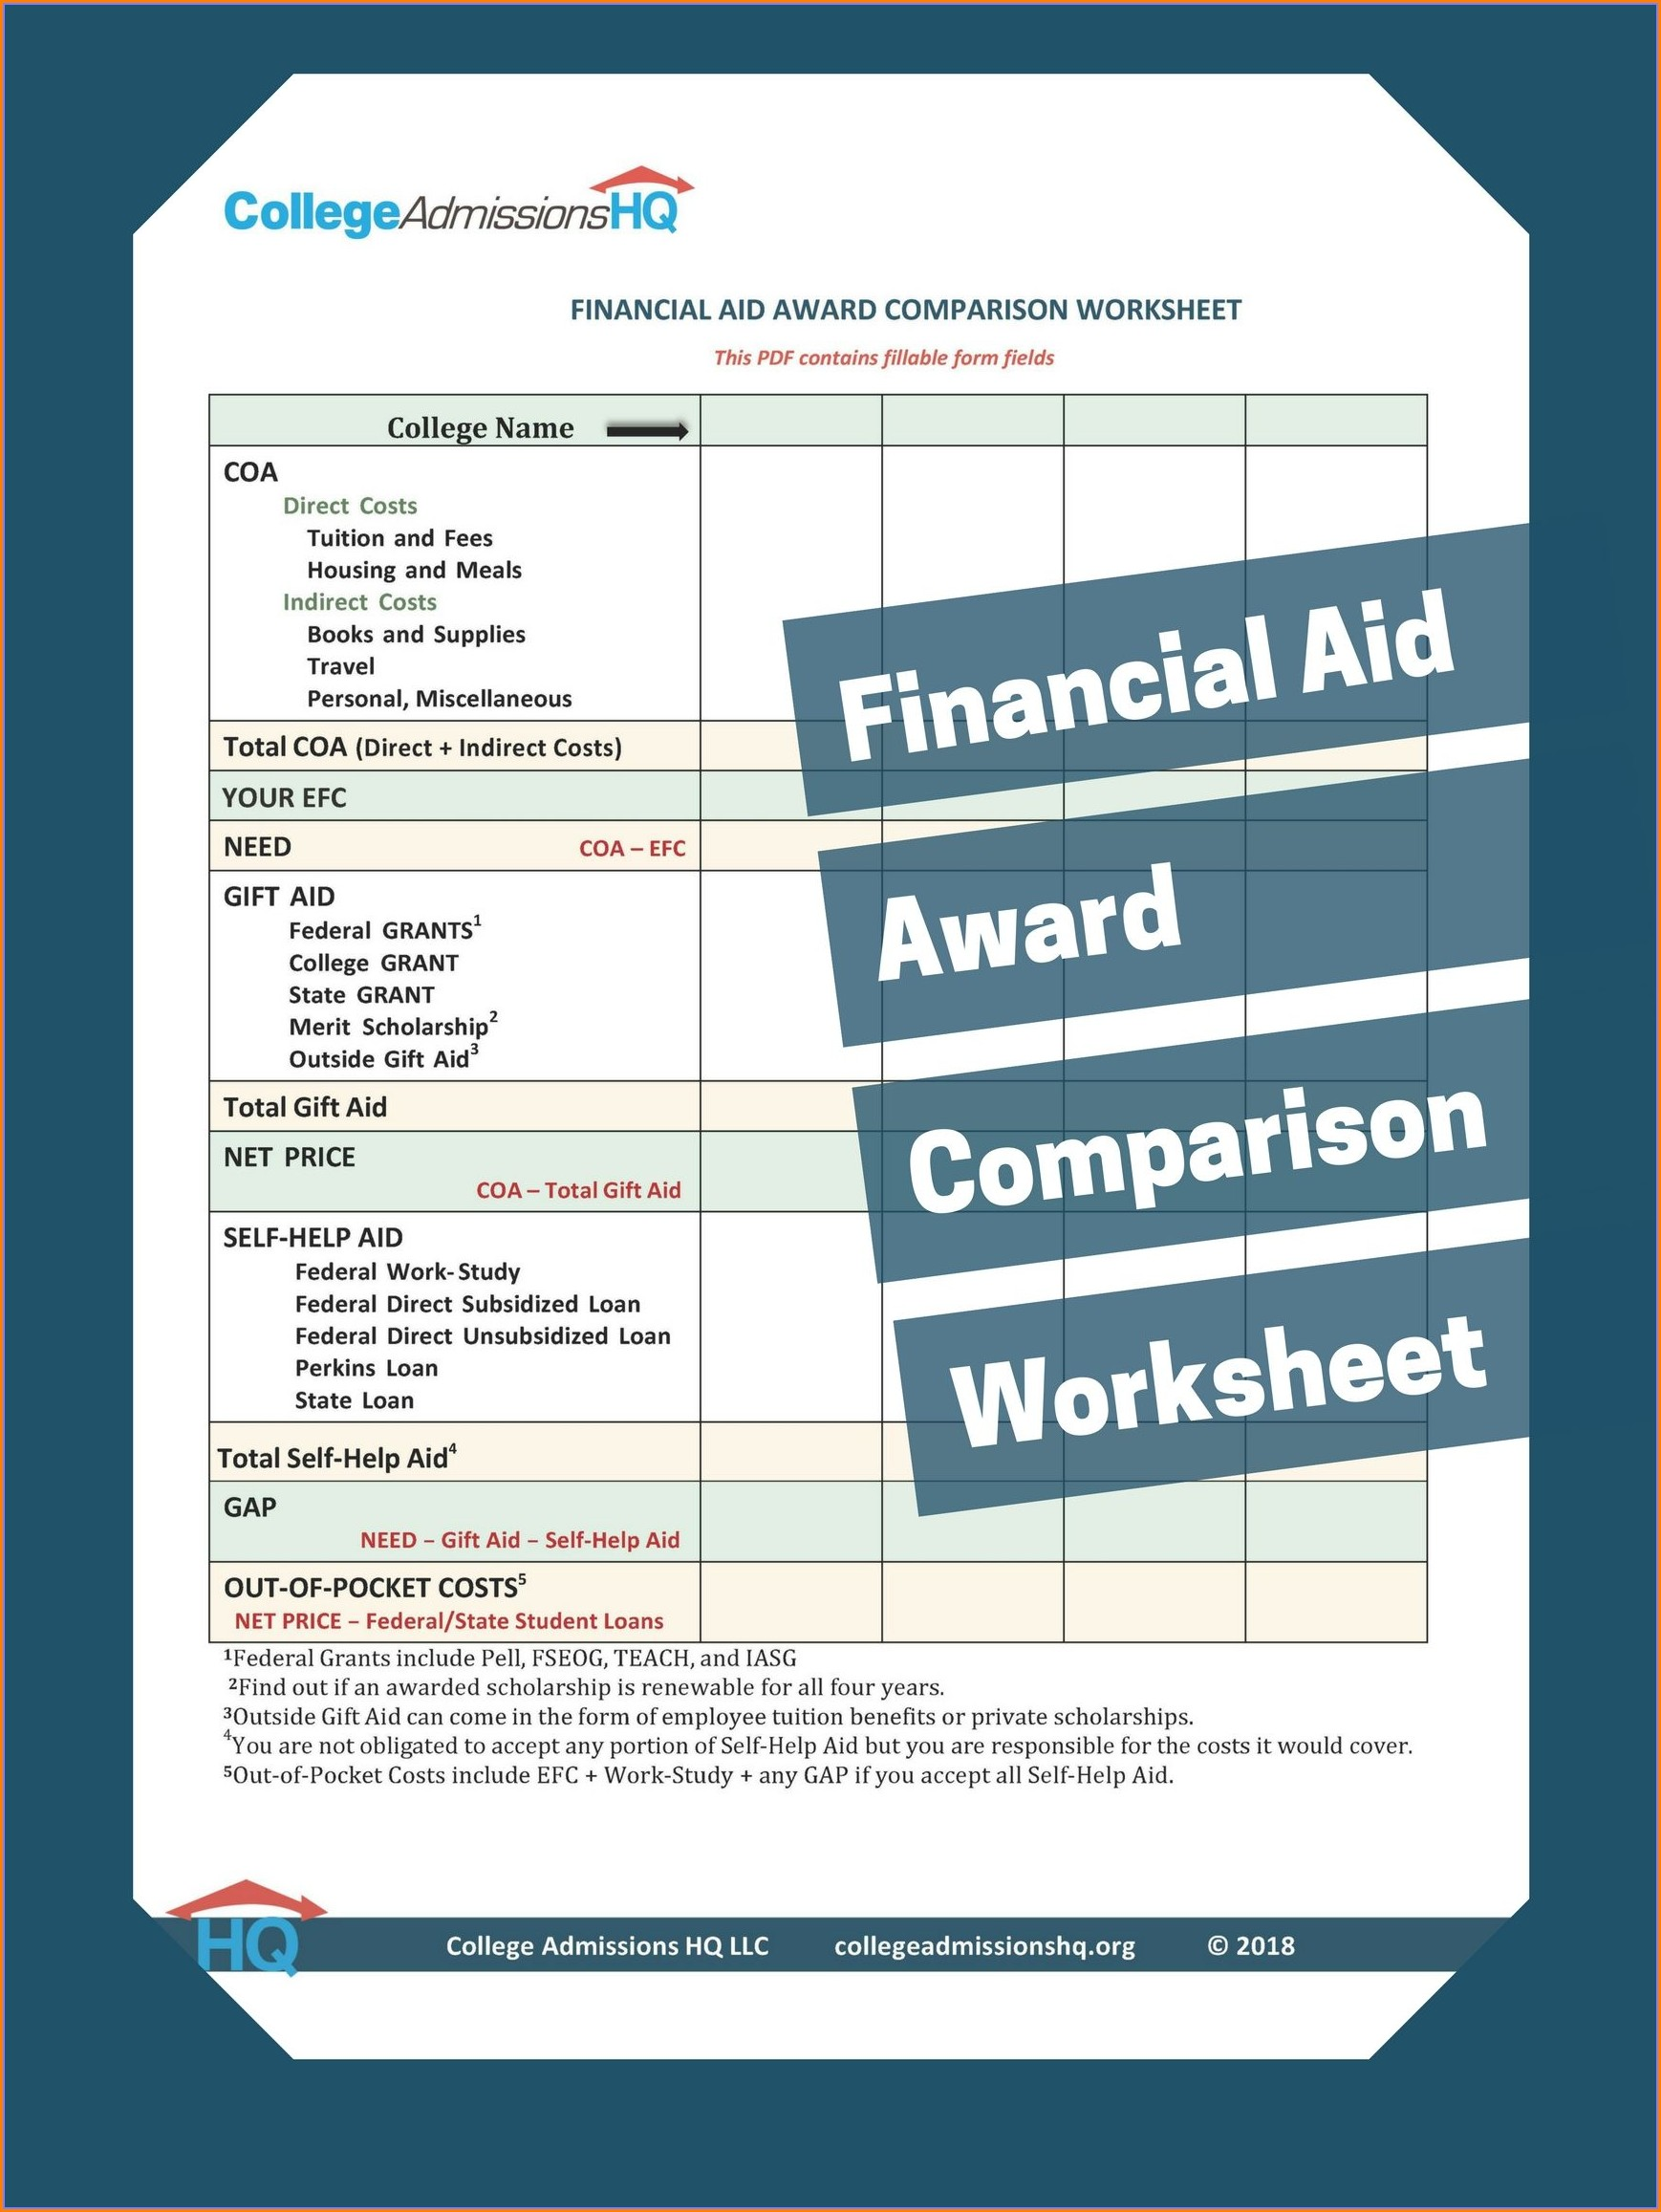 Financial Aid Comparison Worksheet